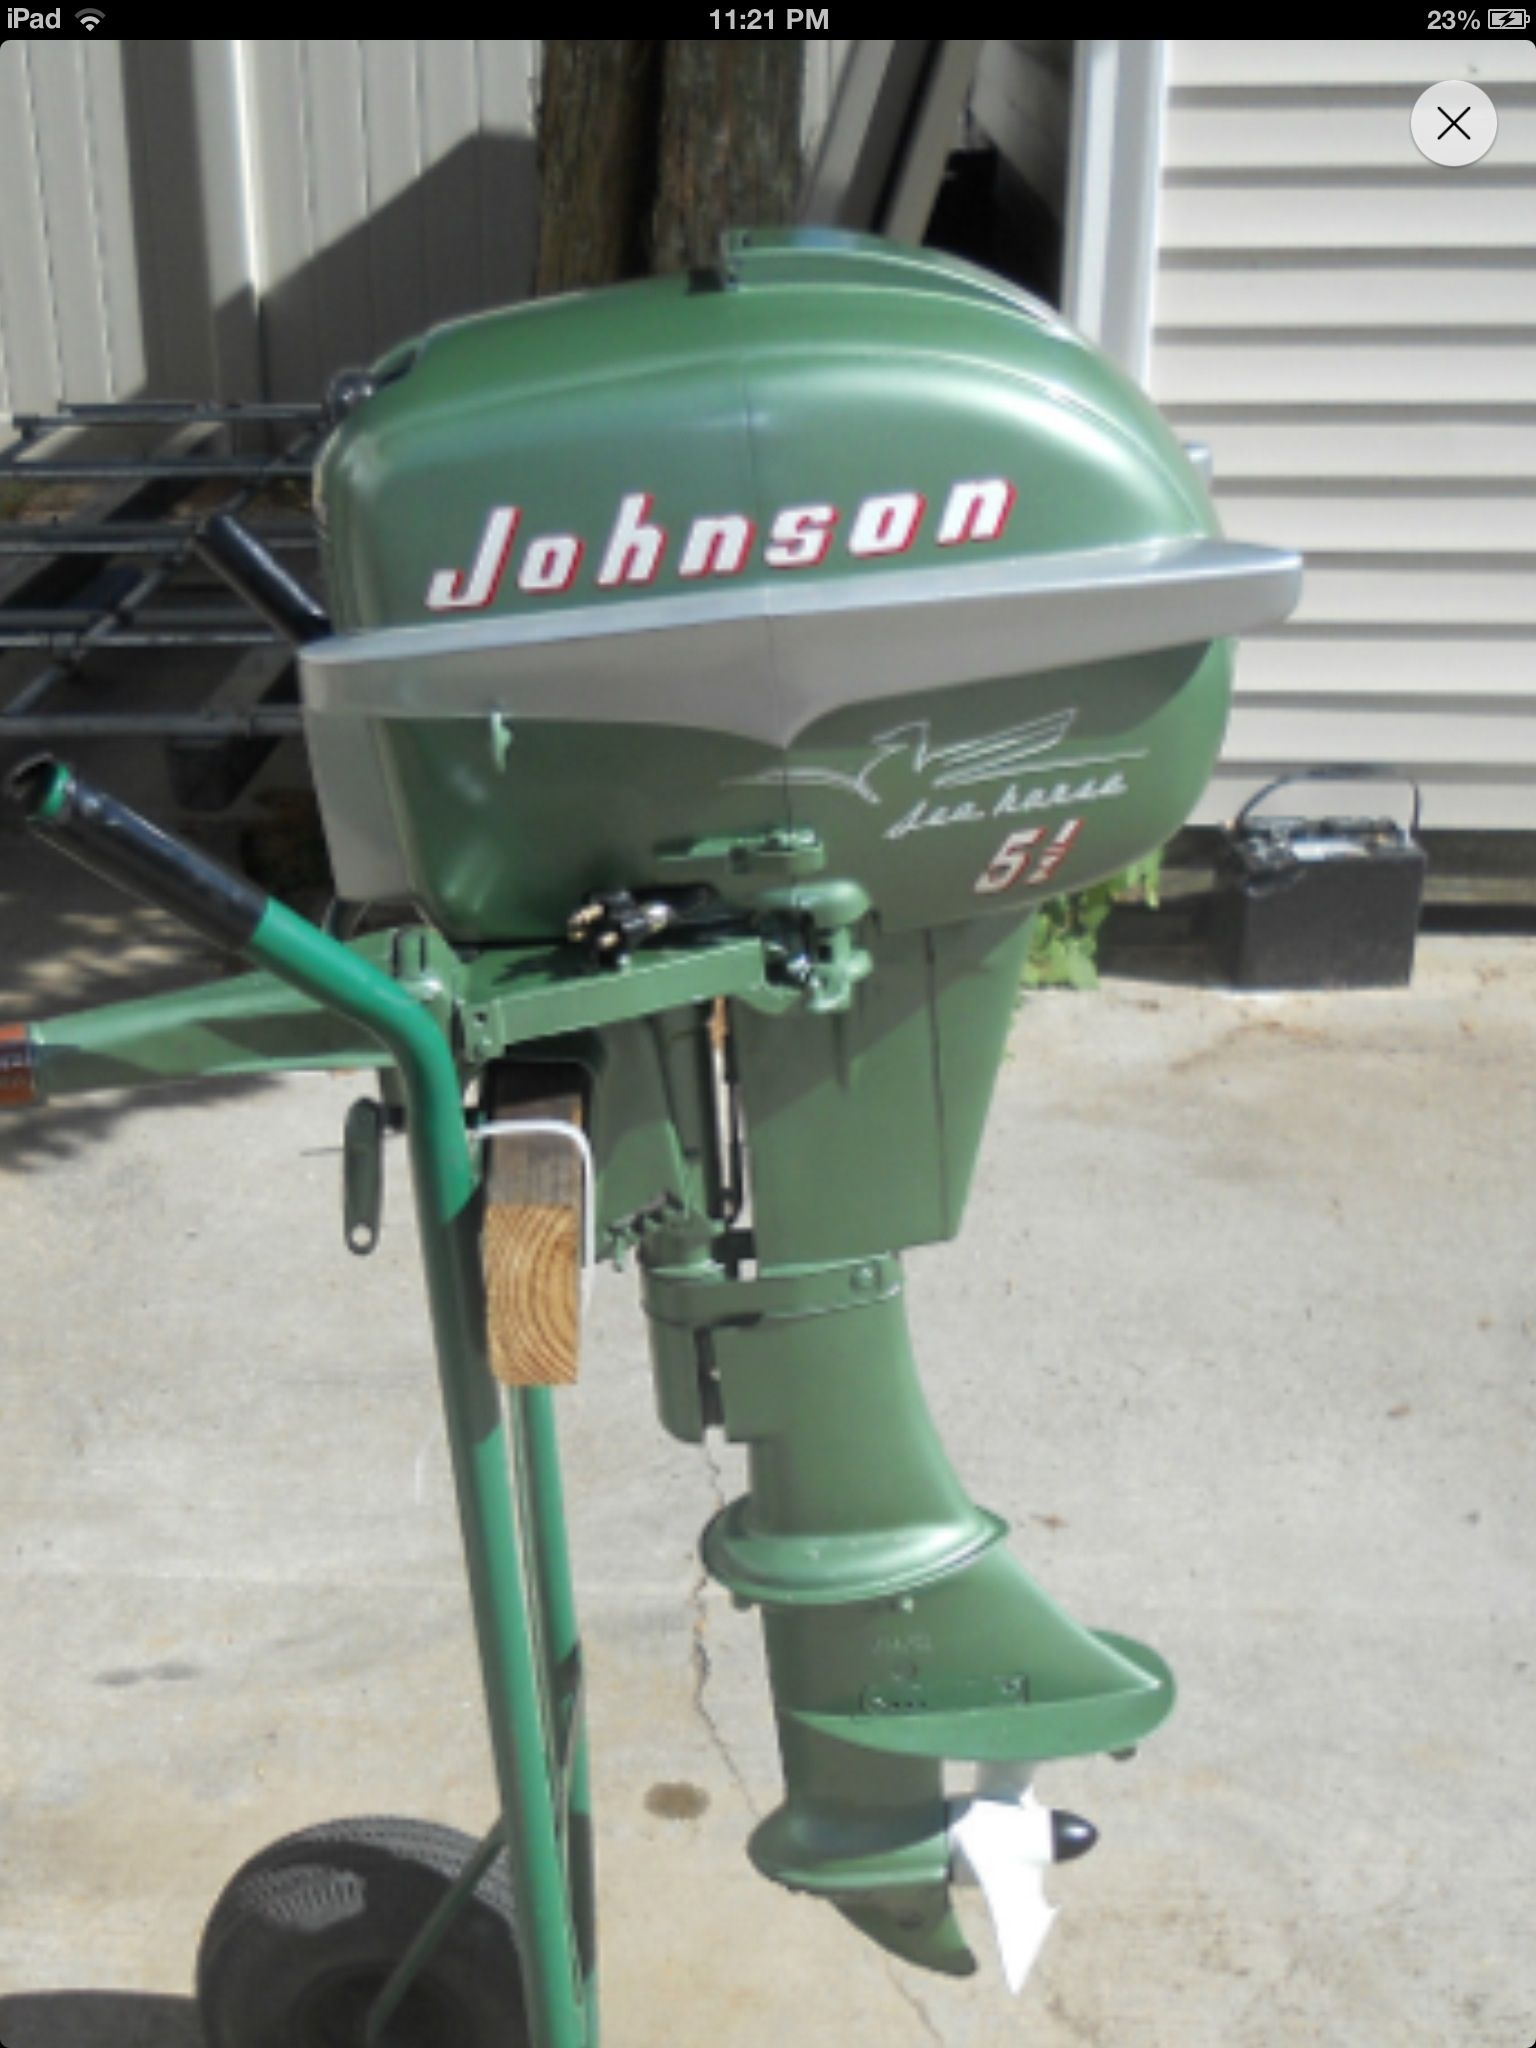 Johnson Outboard; I've repaired more than a few of these. Boat Restoration